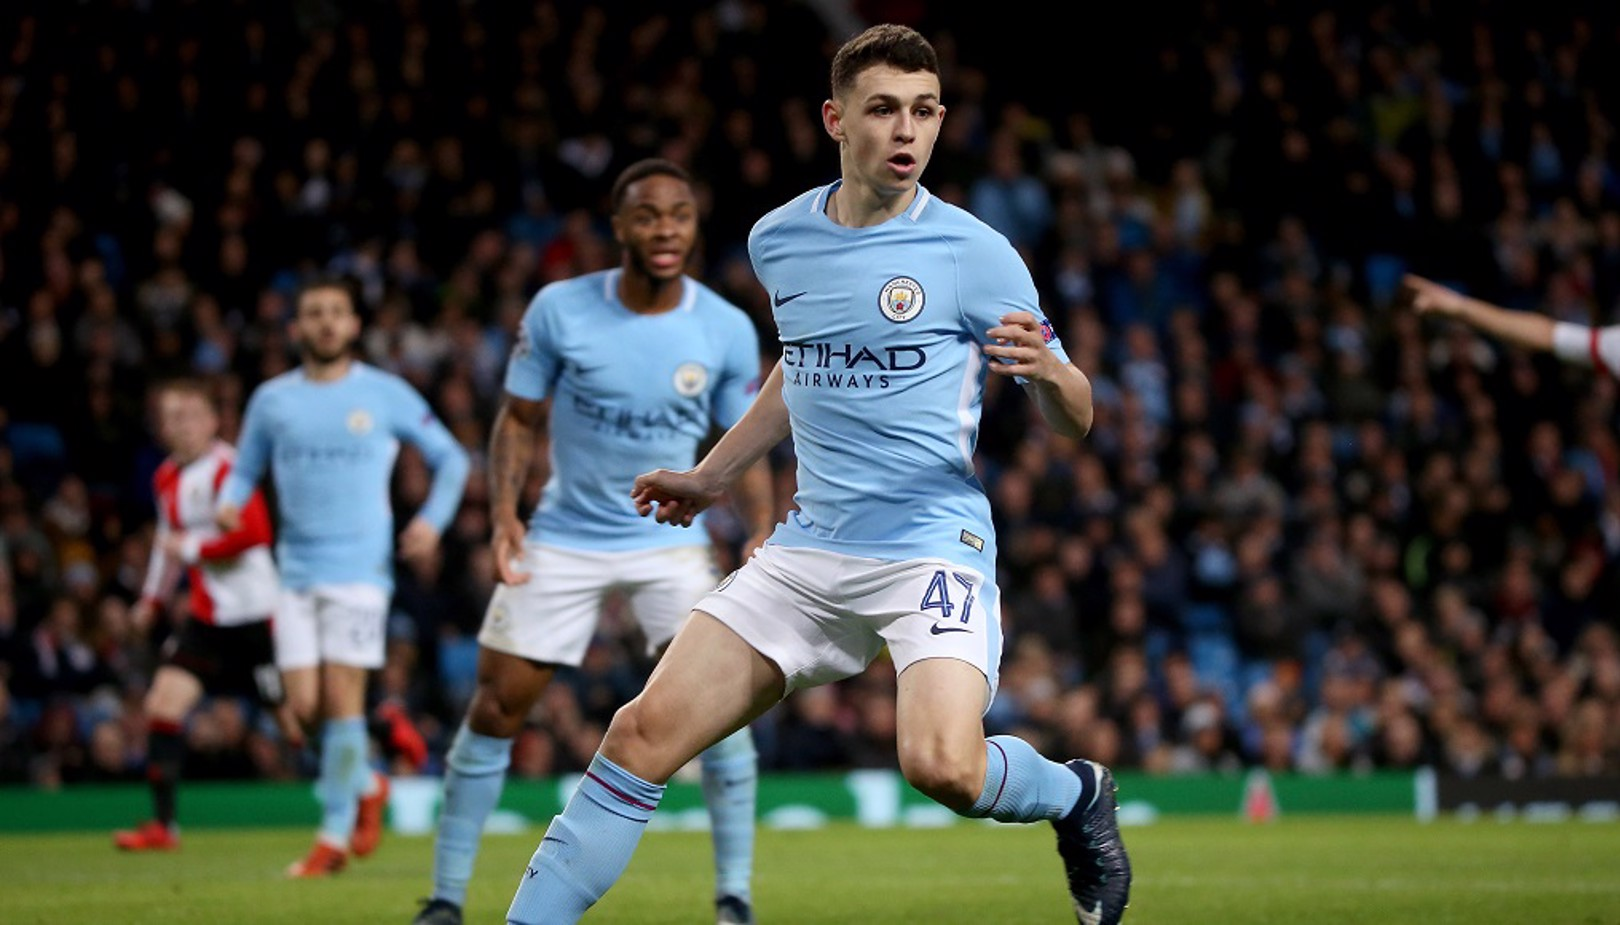 STAR: Phil Foden has set a new Champions League record